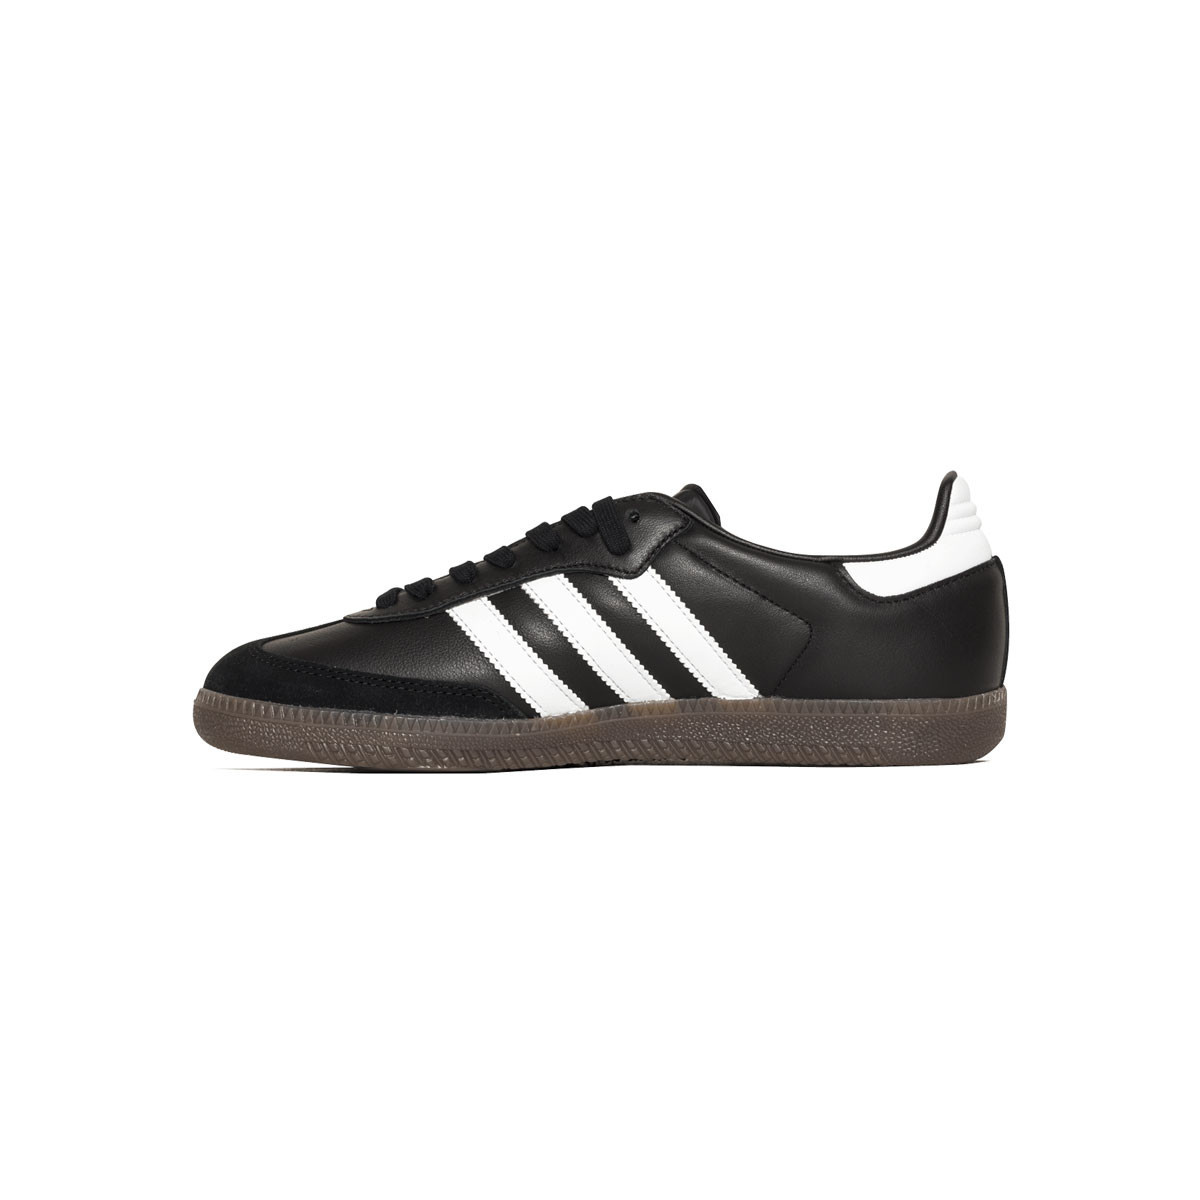 Basket adidas Originals SAMBA OG DownTownStock.Com